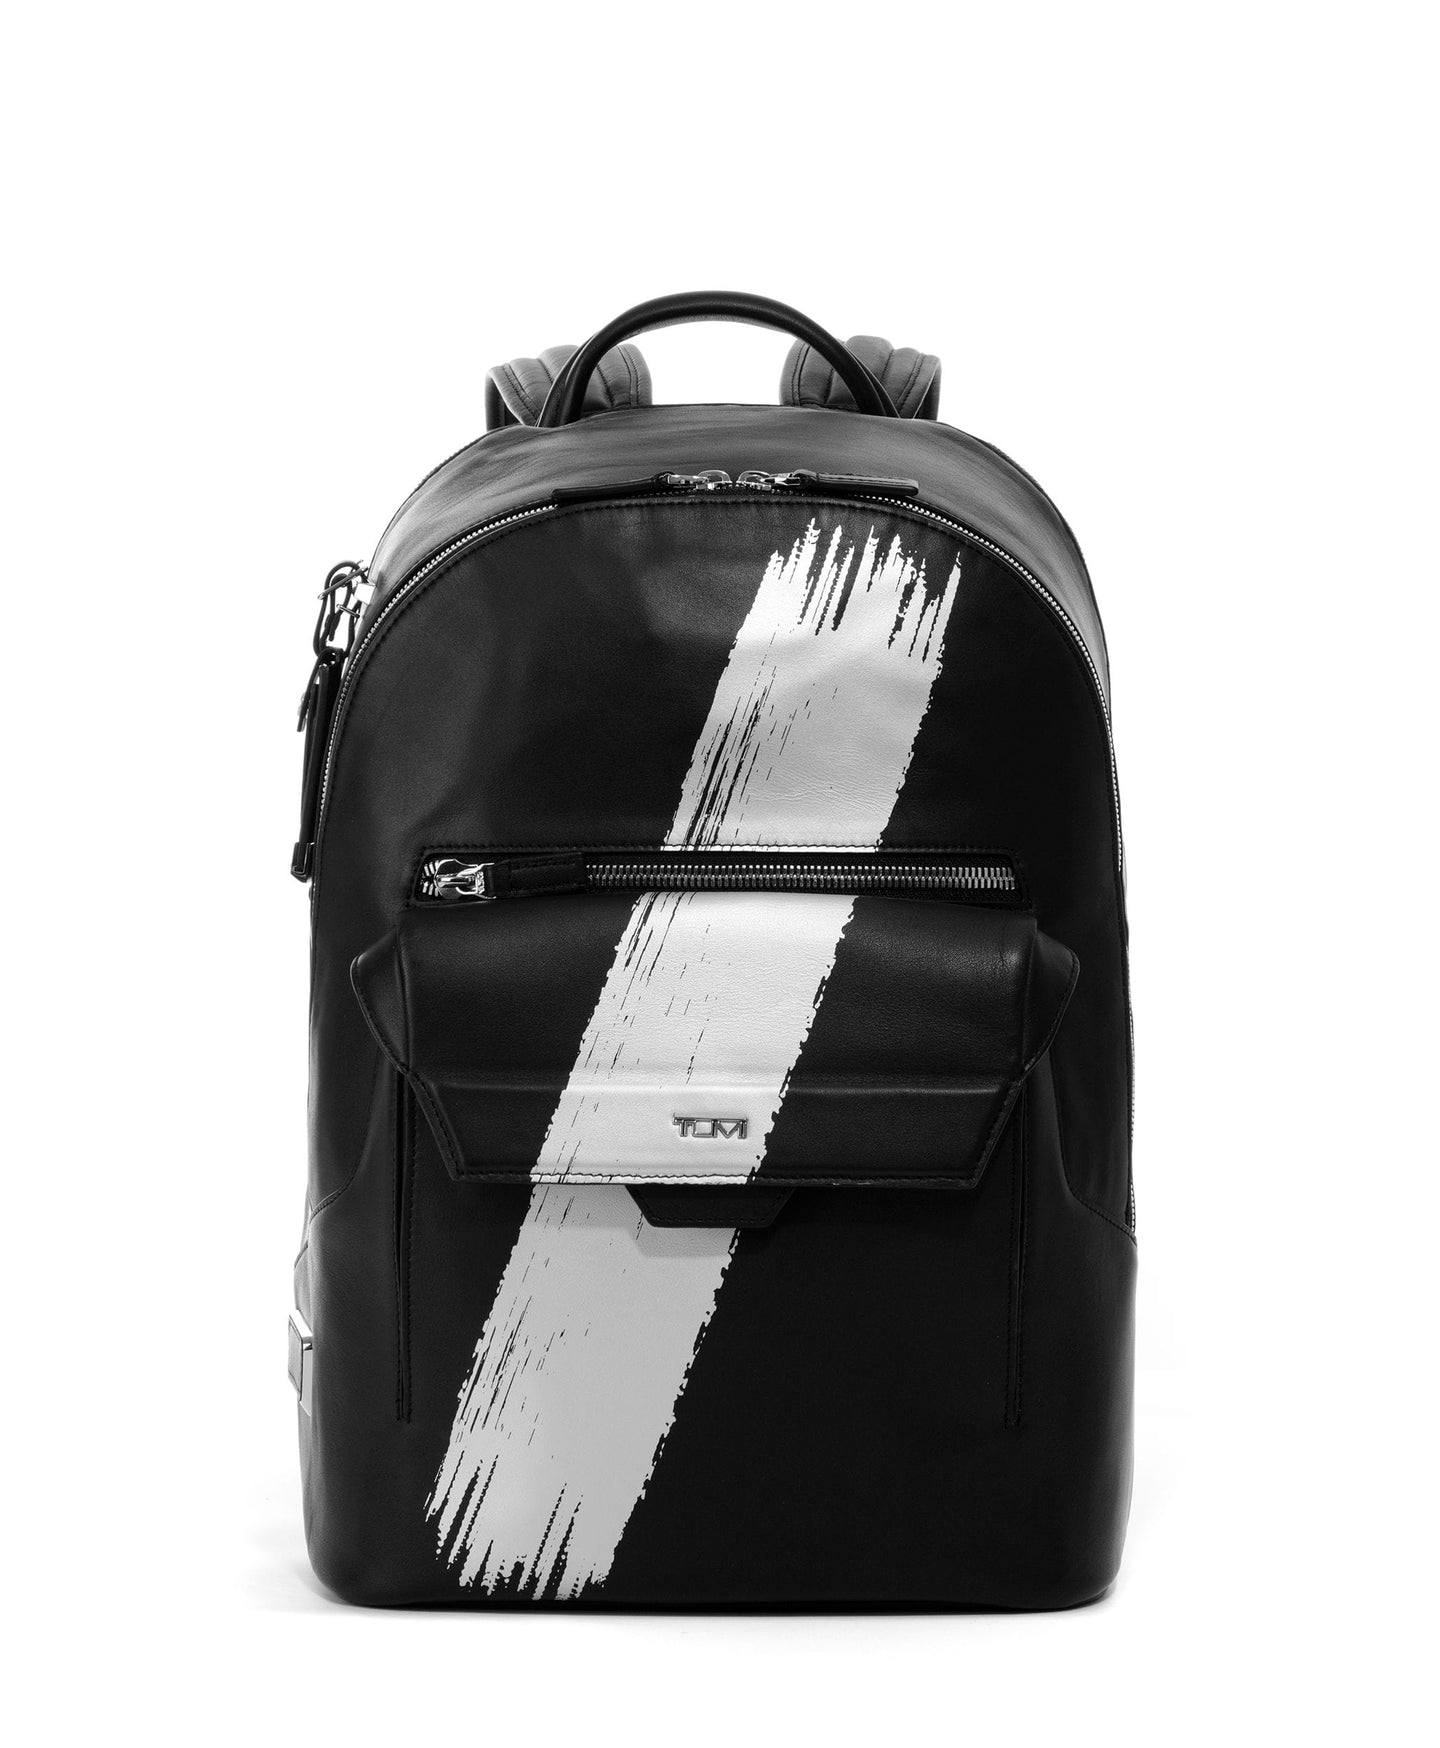 Marlow Backpack Leather